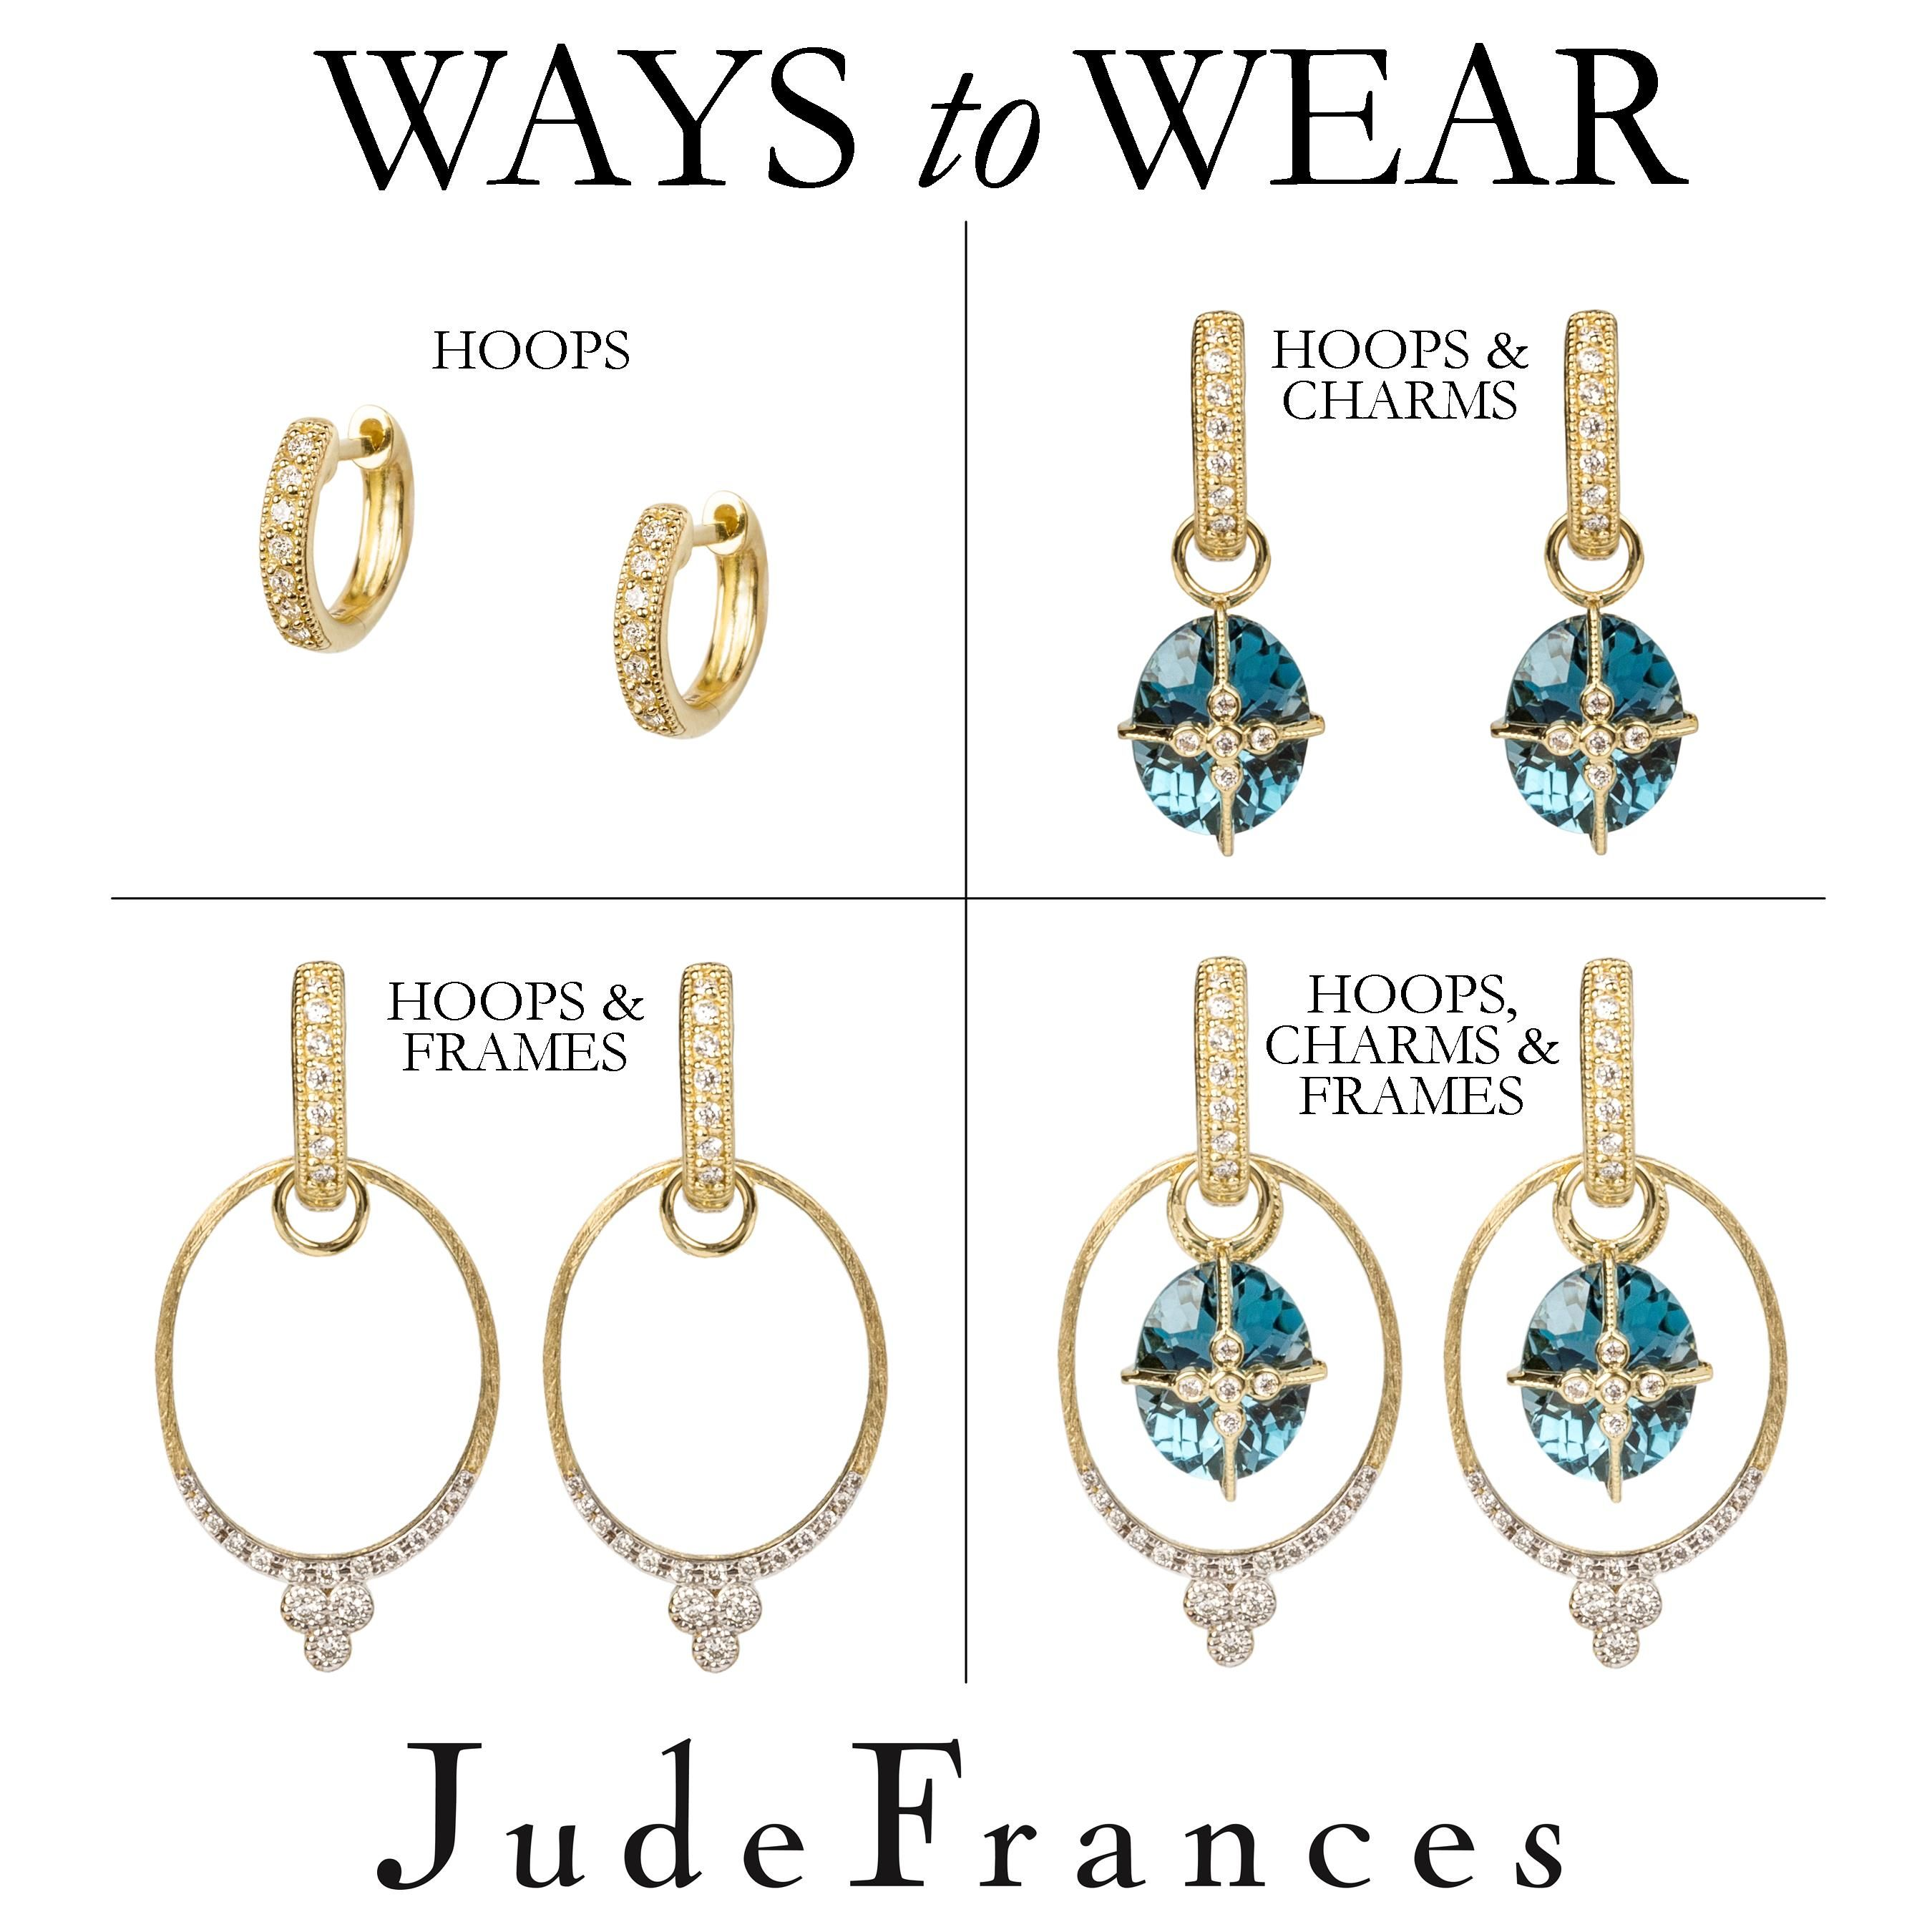 Jude Frances now has frames to go with your hoops and charms. So ...